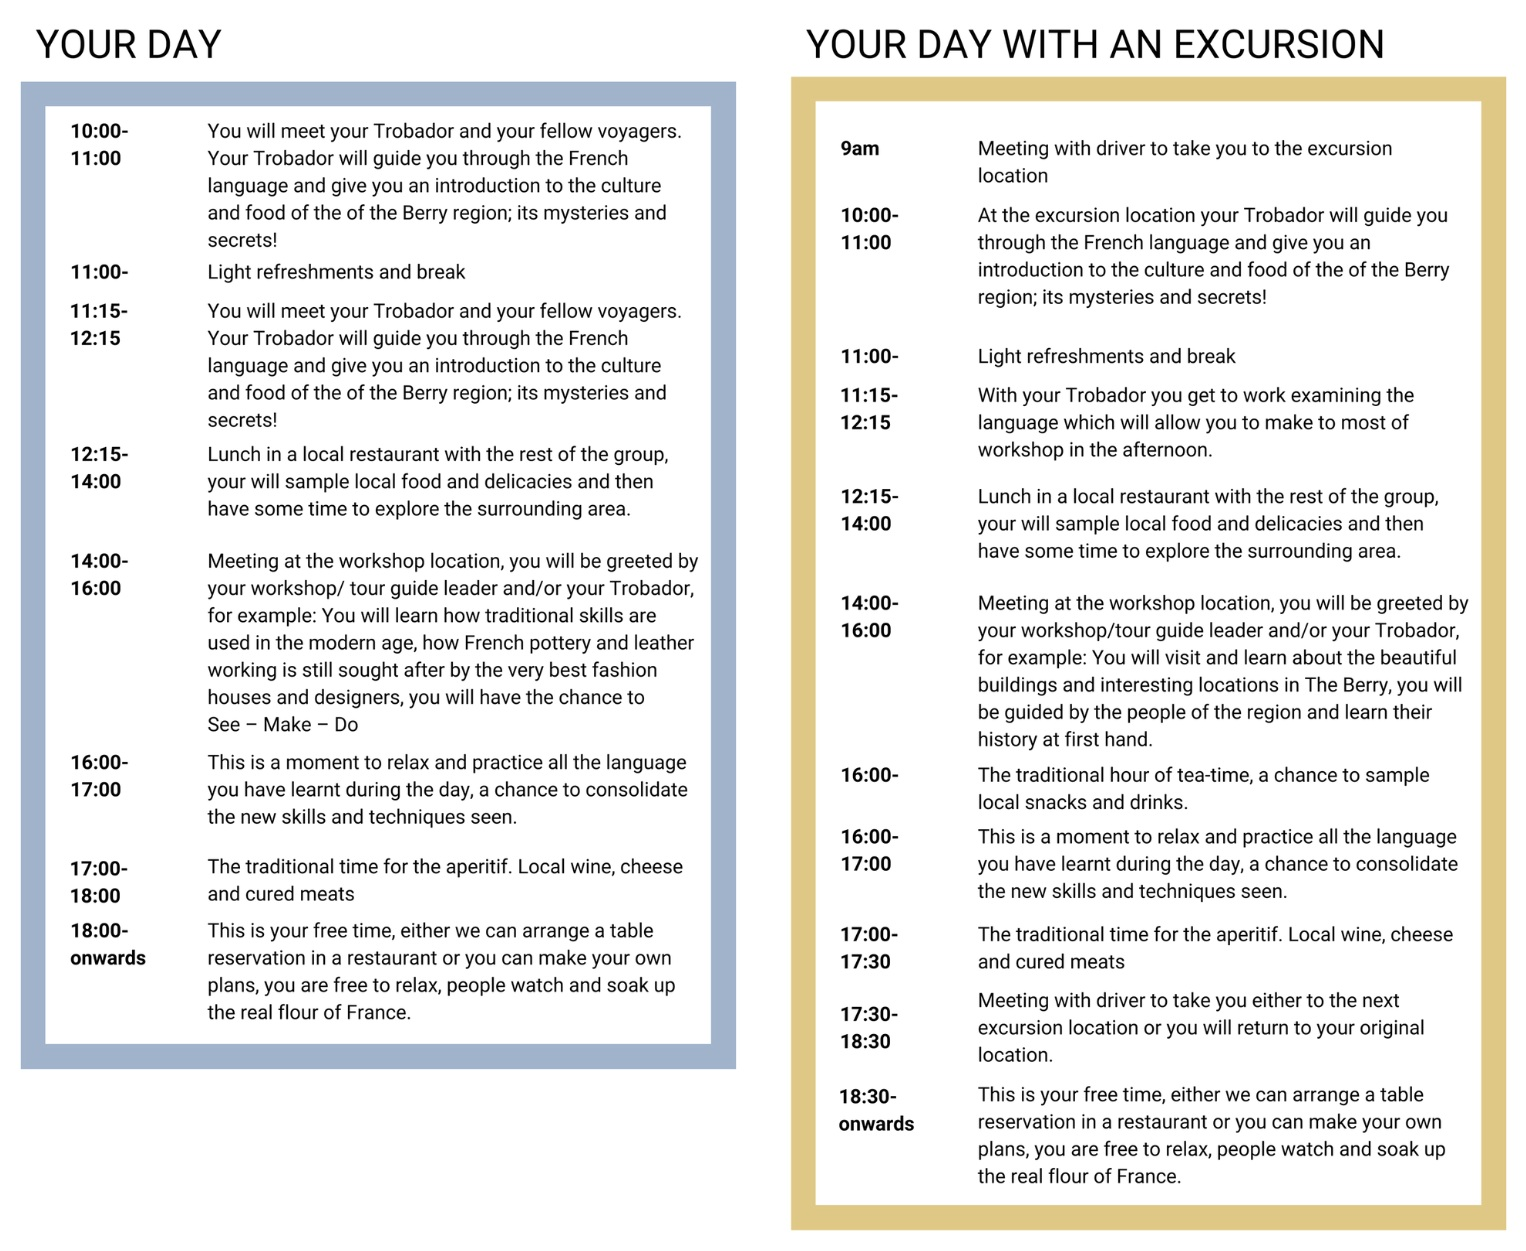 Your journey timetable - Your day will start with a meeting with your Trobador guide, who will give you the key terms and language that you will require for your workshop and/or excursions in the afternoon.